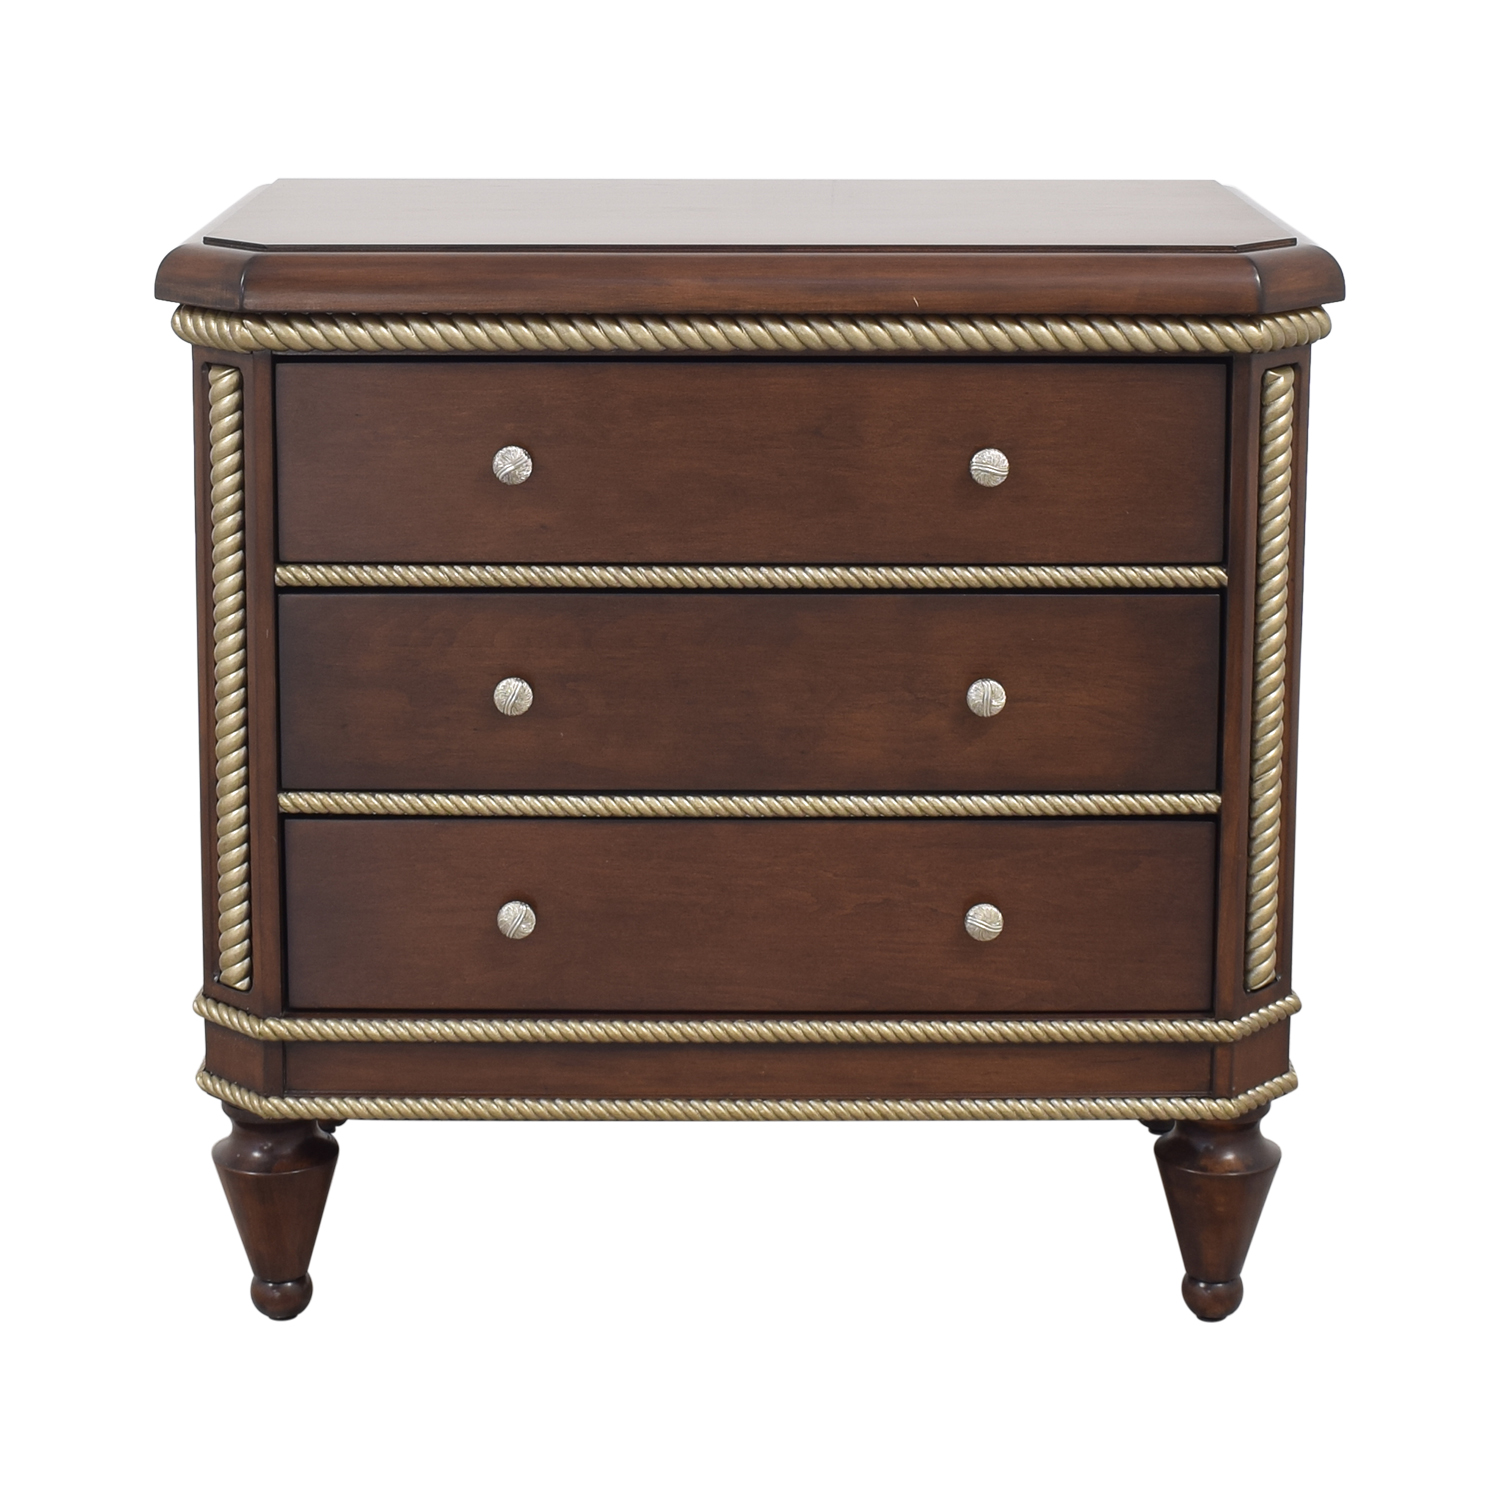 Swaim Swaim Chest of Drawers ct